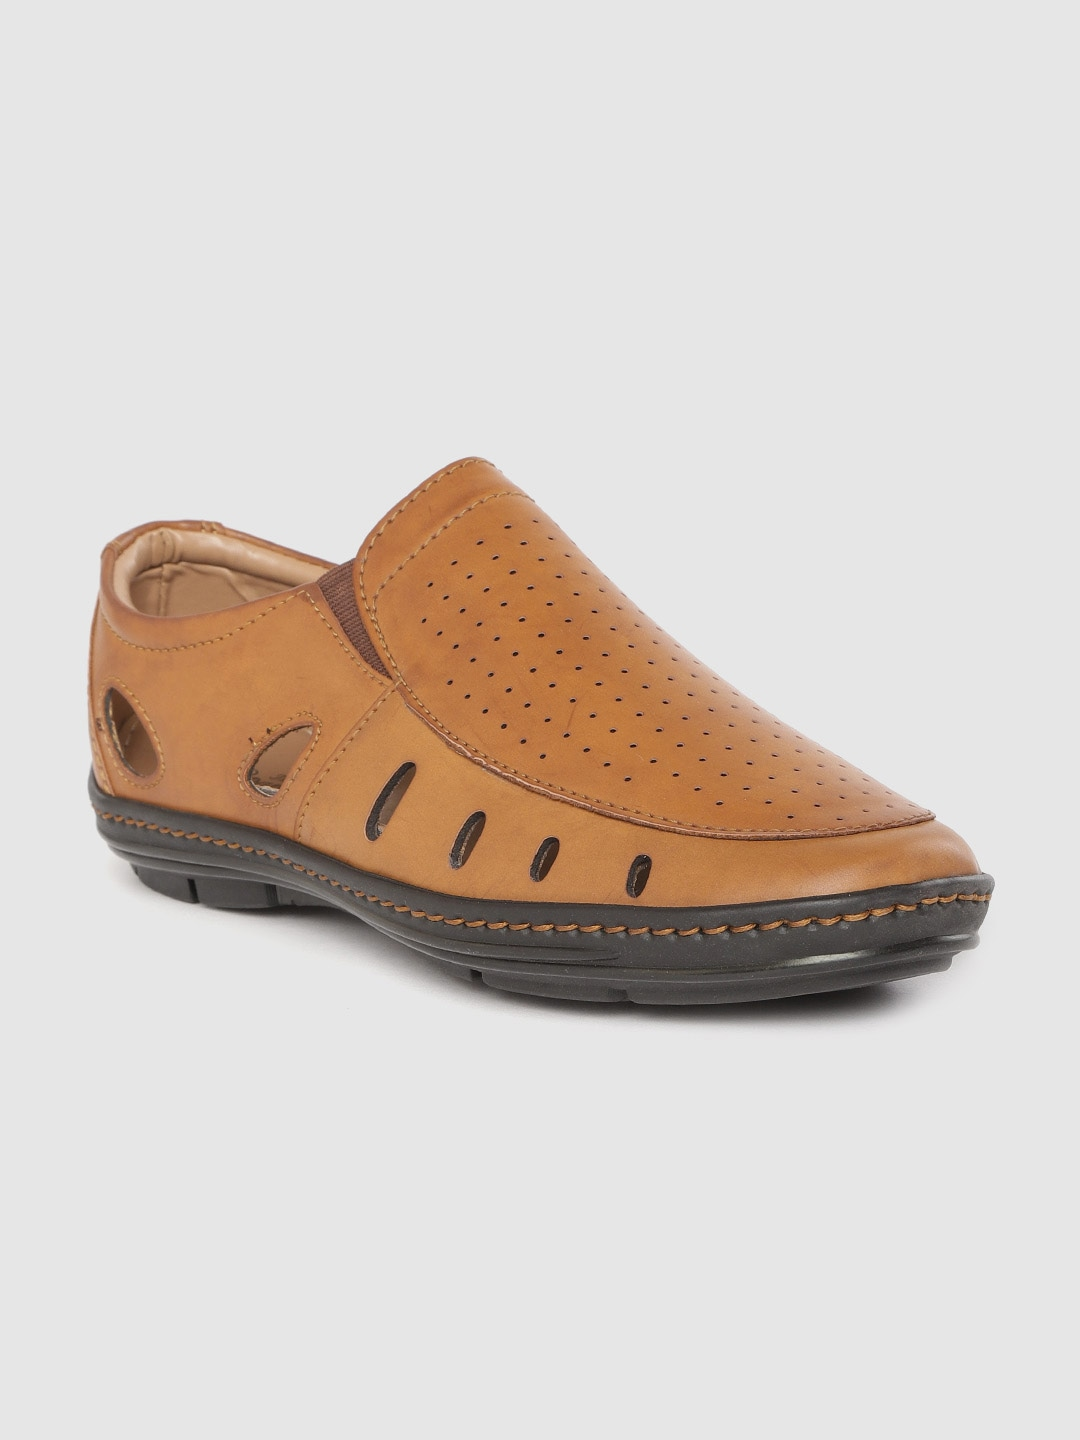 Tan Brown Perforated Shoe Style Sandals with Cut Out Detail